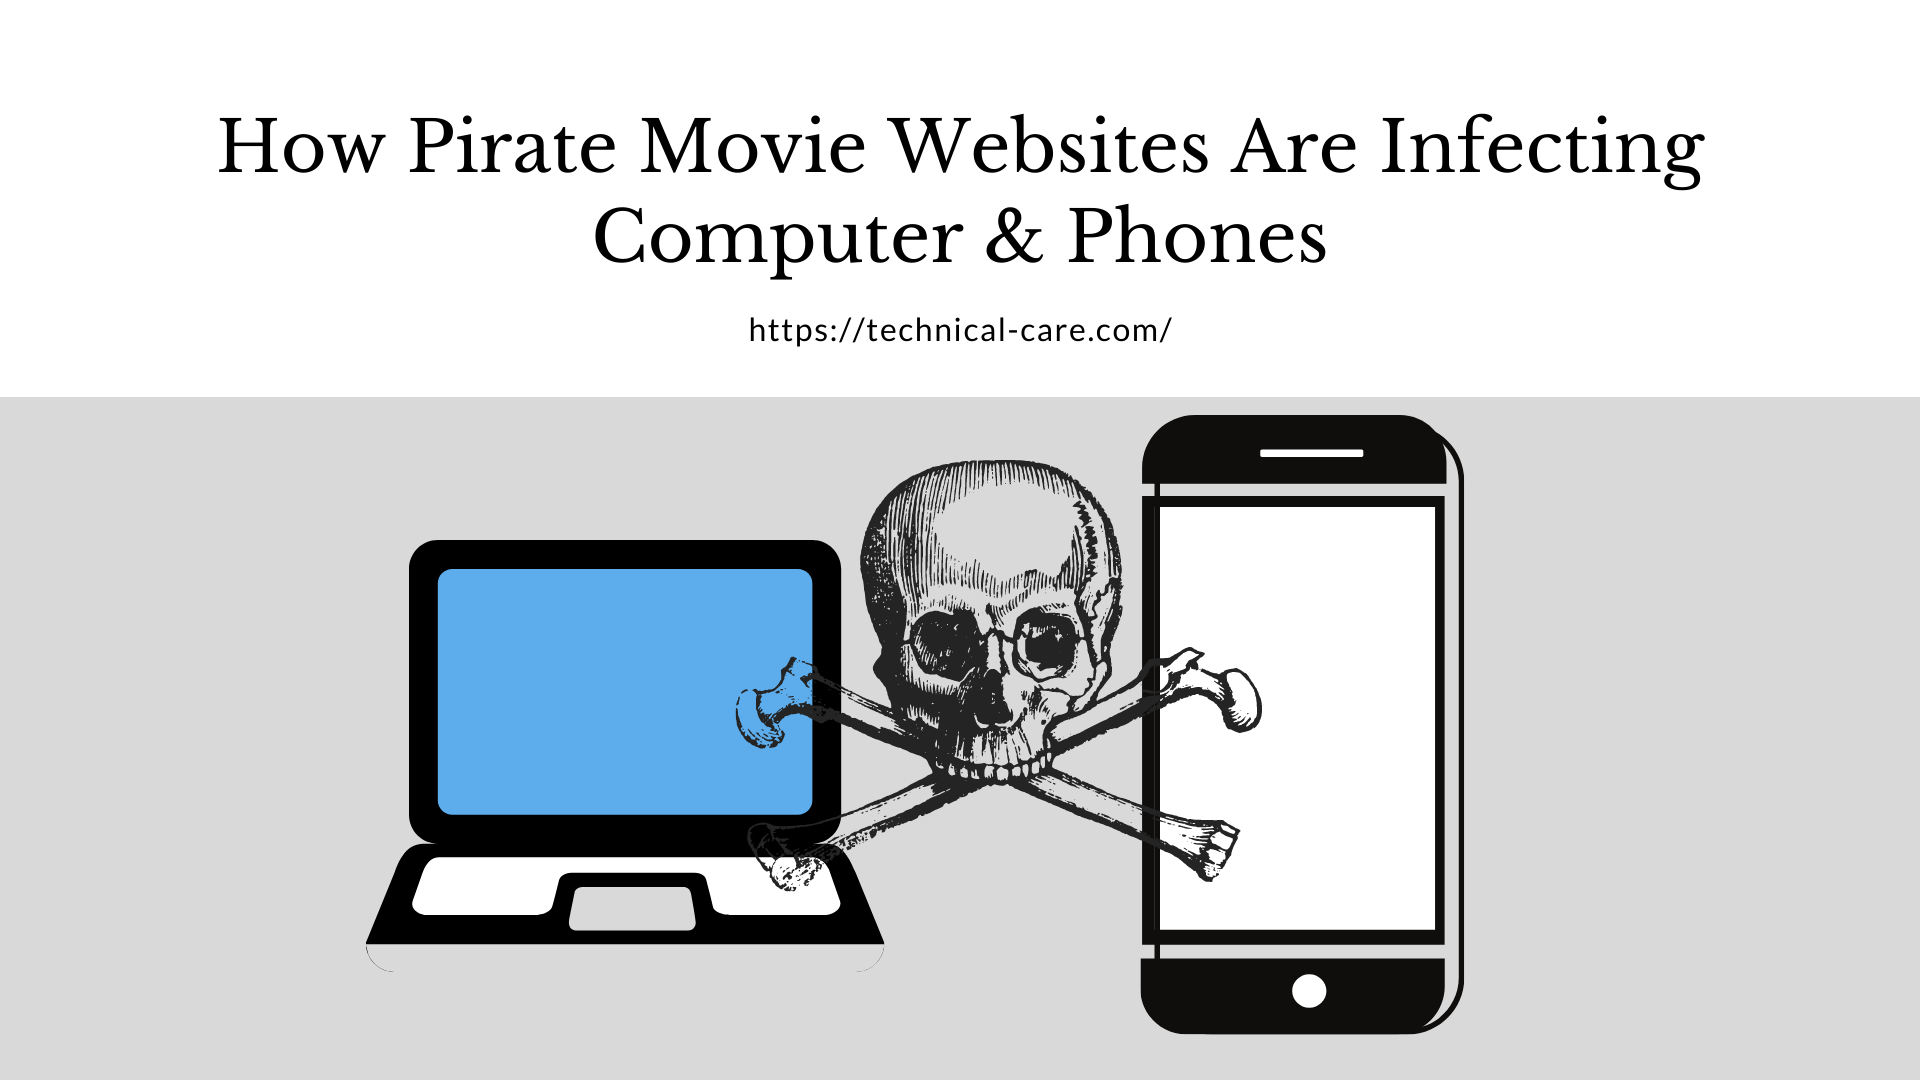 How Pirate Movie Websites Are Infecting Computer & Phones